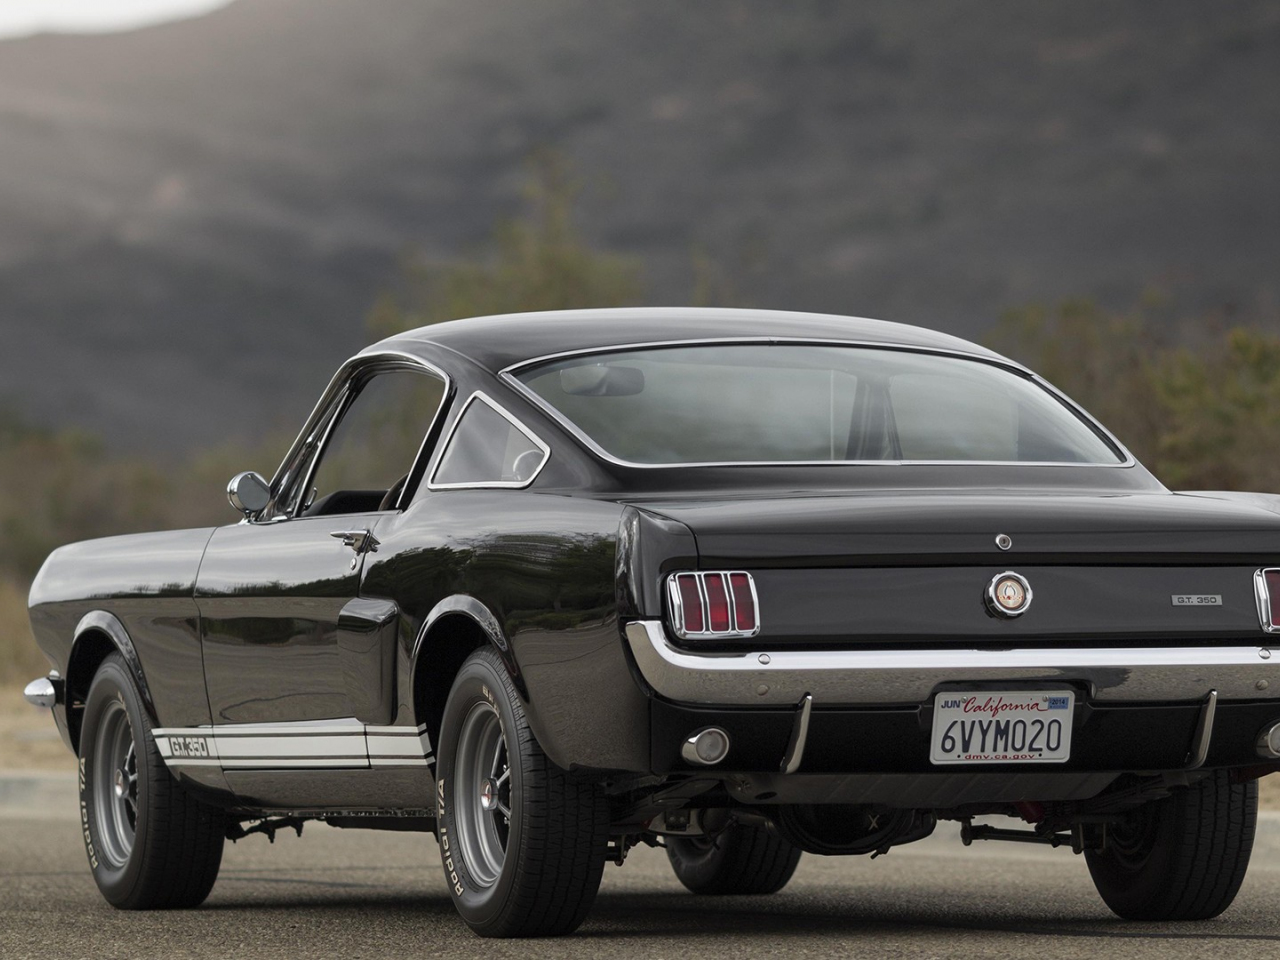 Download 1280x960 Wallpaper Black Ford Mustang Shelby Car Standard